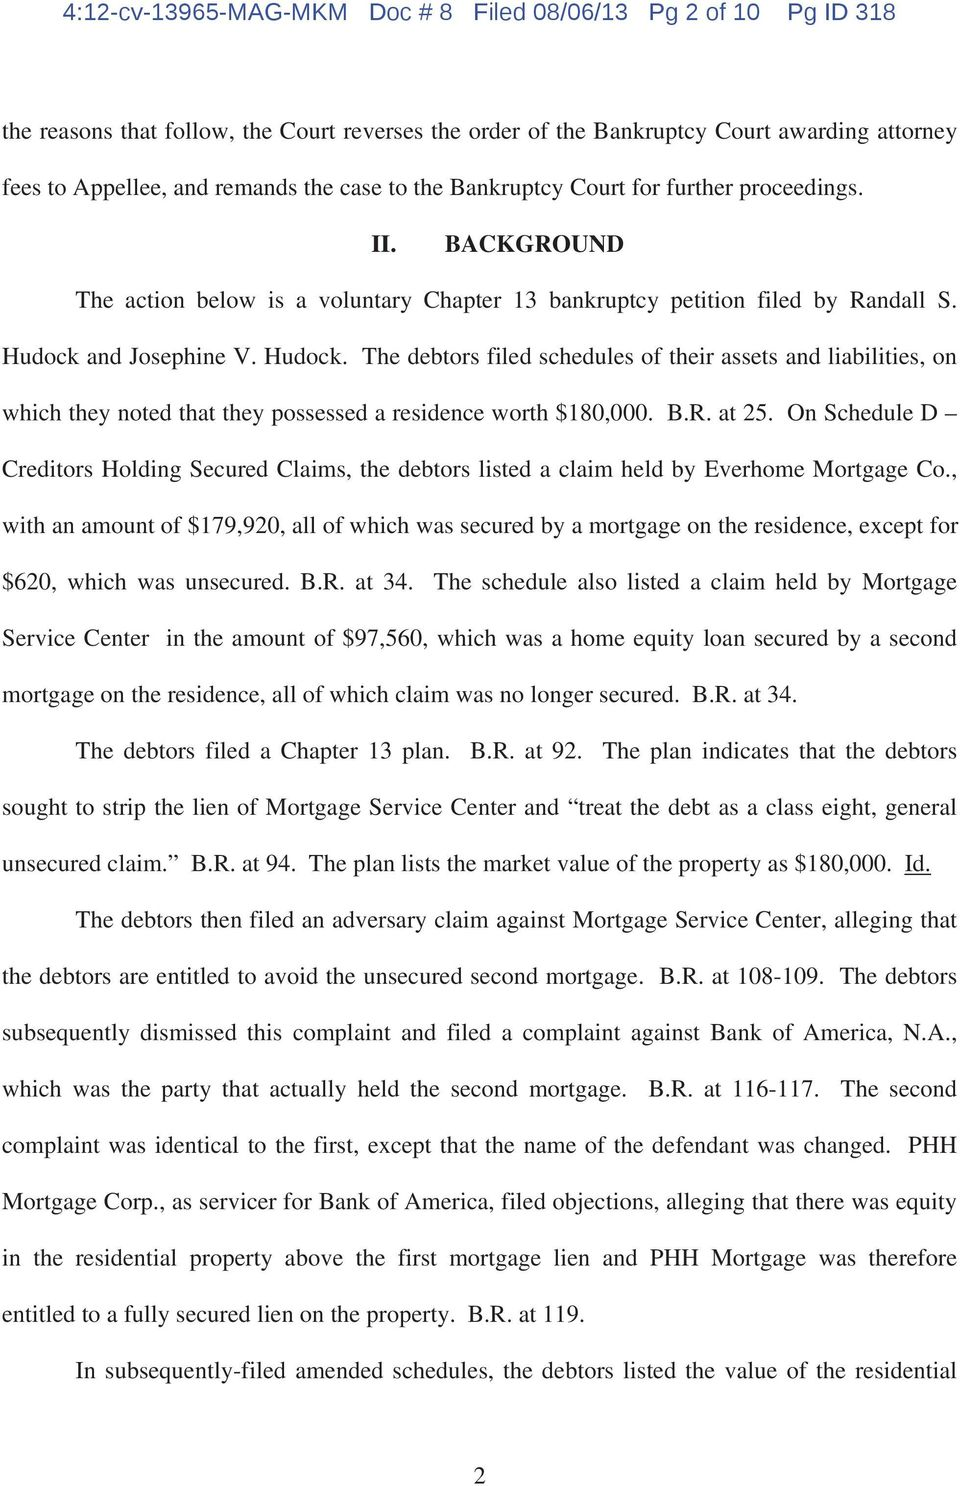 and Josephine V. Hudock. The debtors filed schedules of their assets and liabilities, on which they noted that they possessed a residence worth $180,000. B.R. at 25.